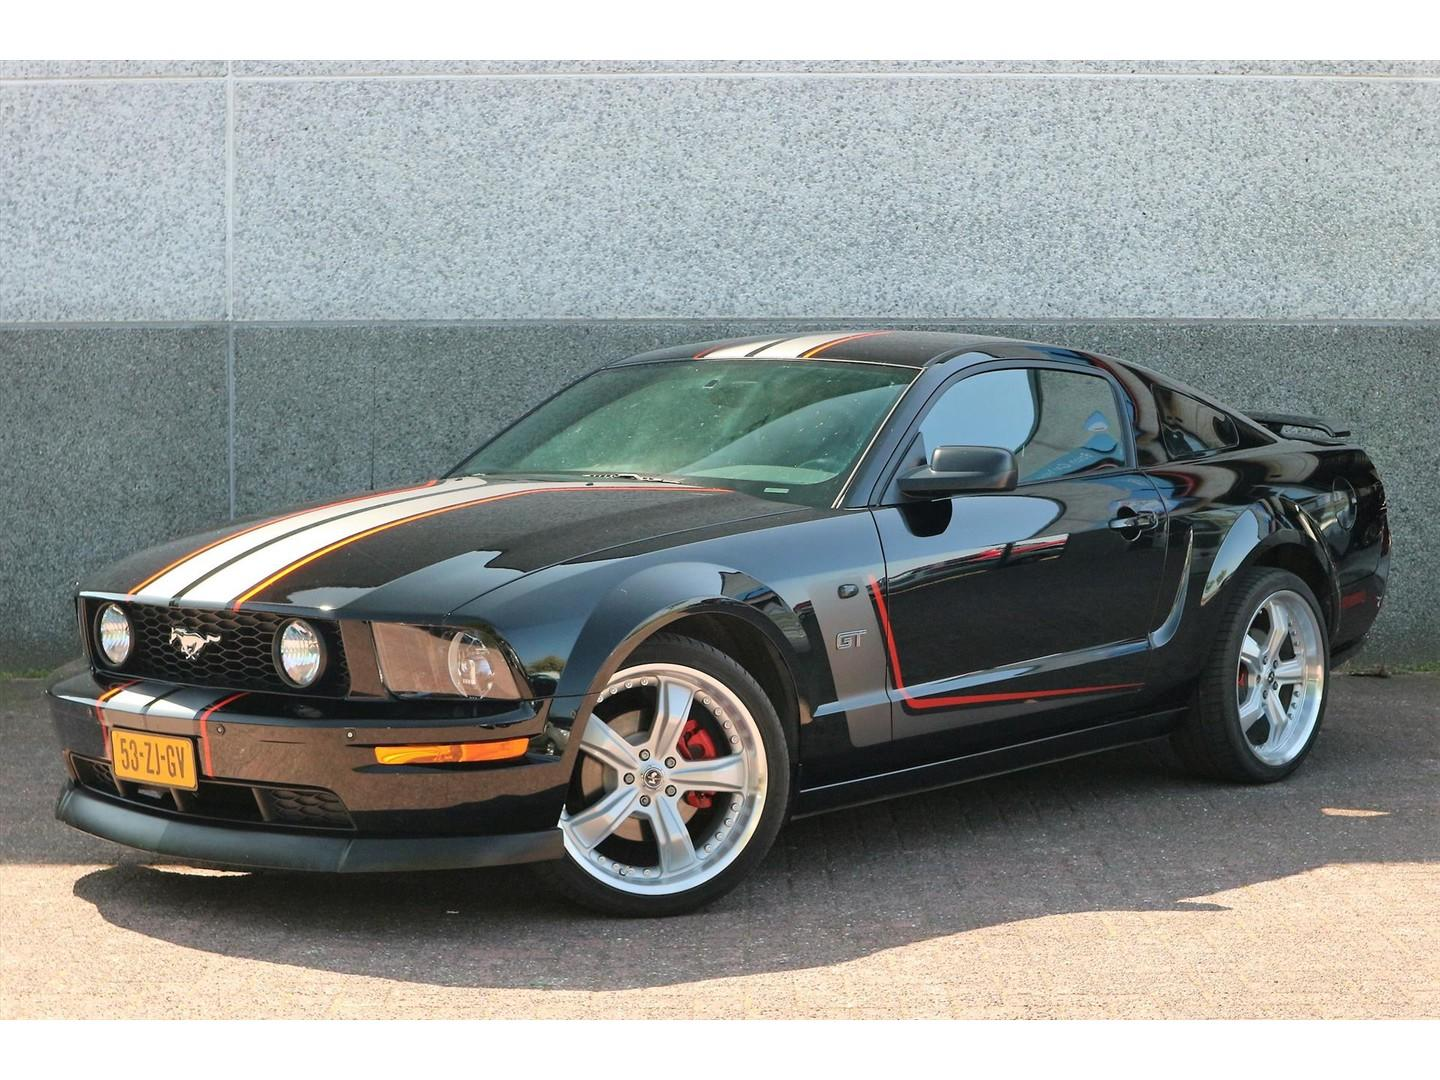 Ford Mustang 4.6 v8 gt premium coupe